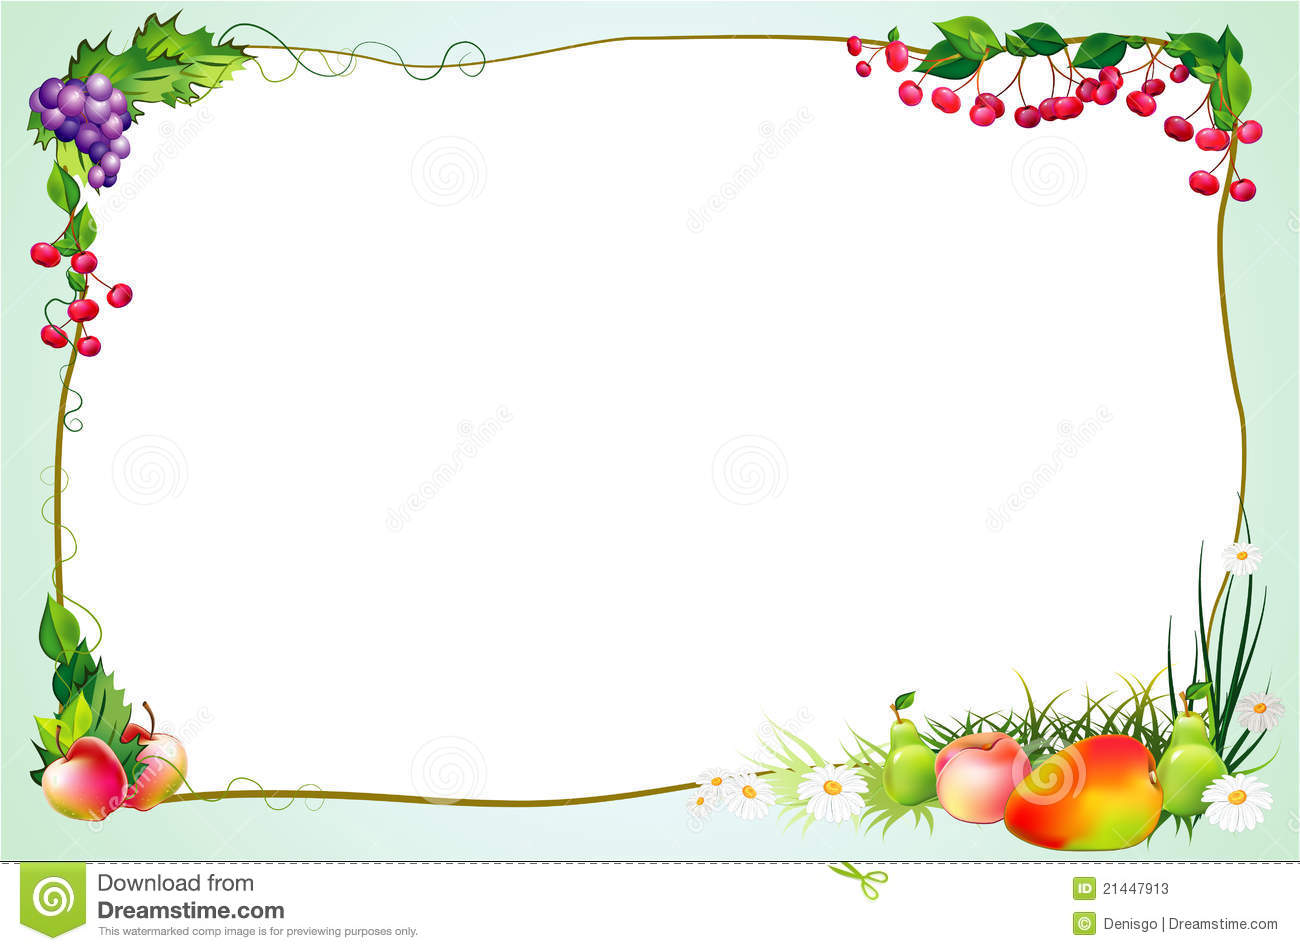 Fruit Borders Clip Art Diet border with fruits and